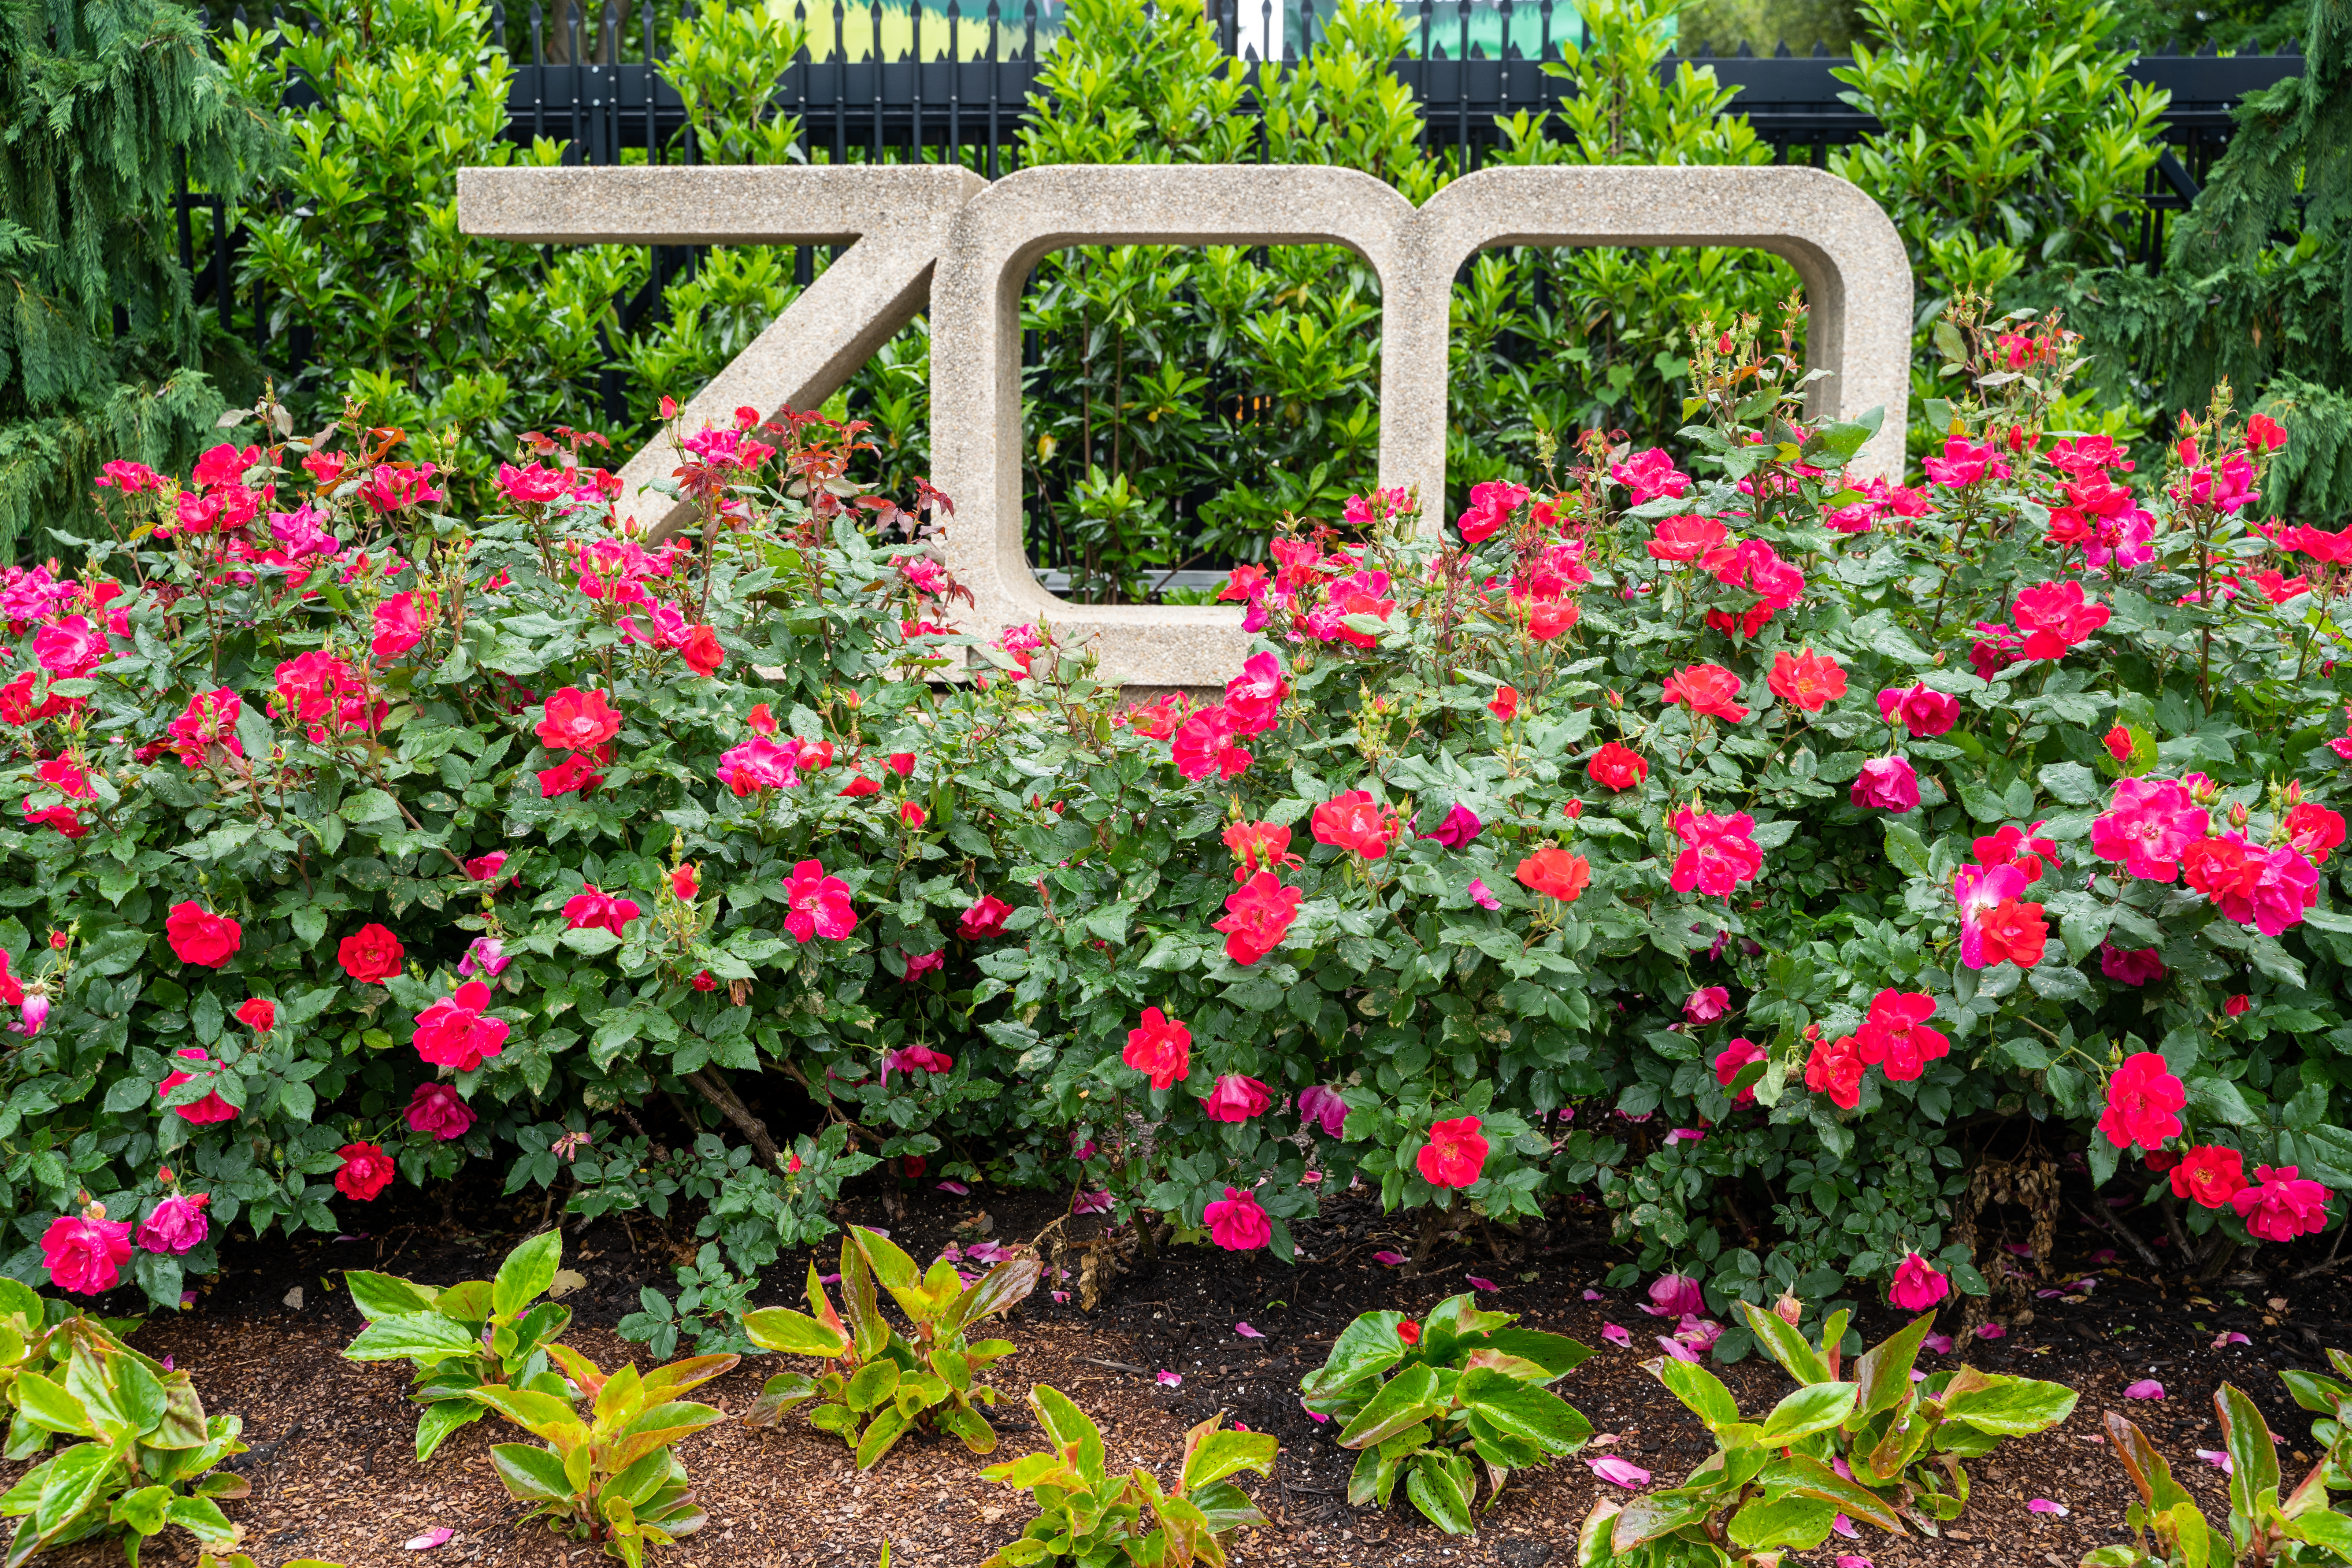 """A large """"Zoo"""" sign surrounded by red flowers."""